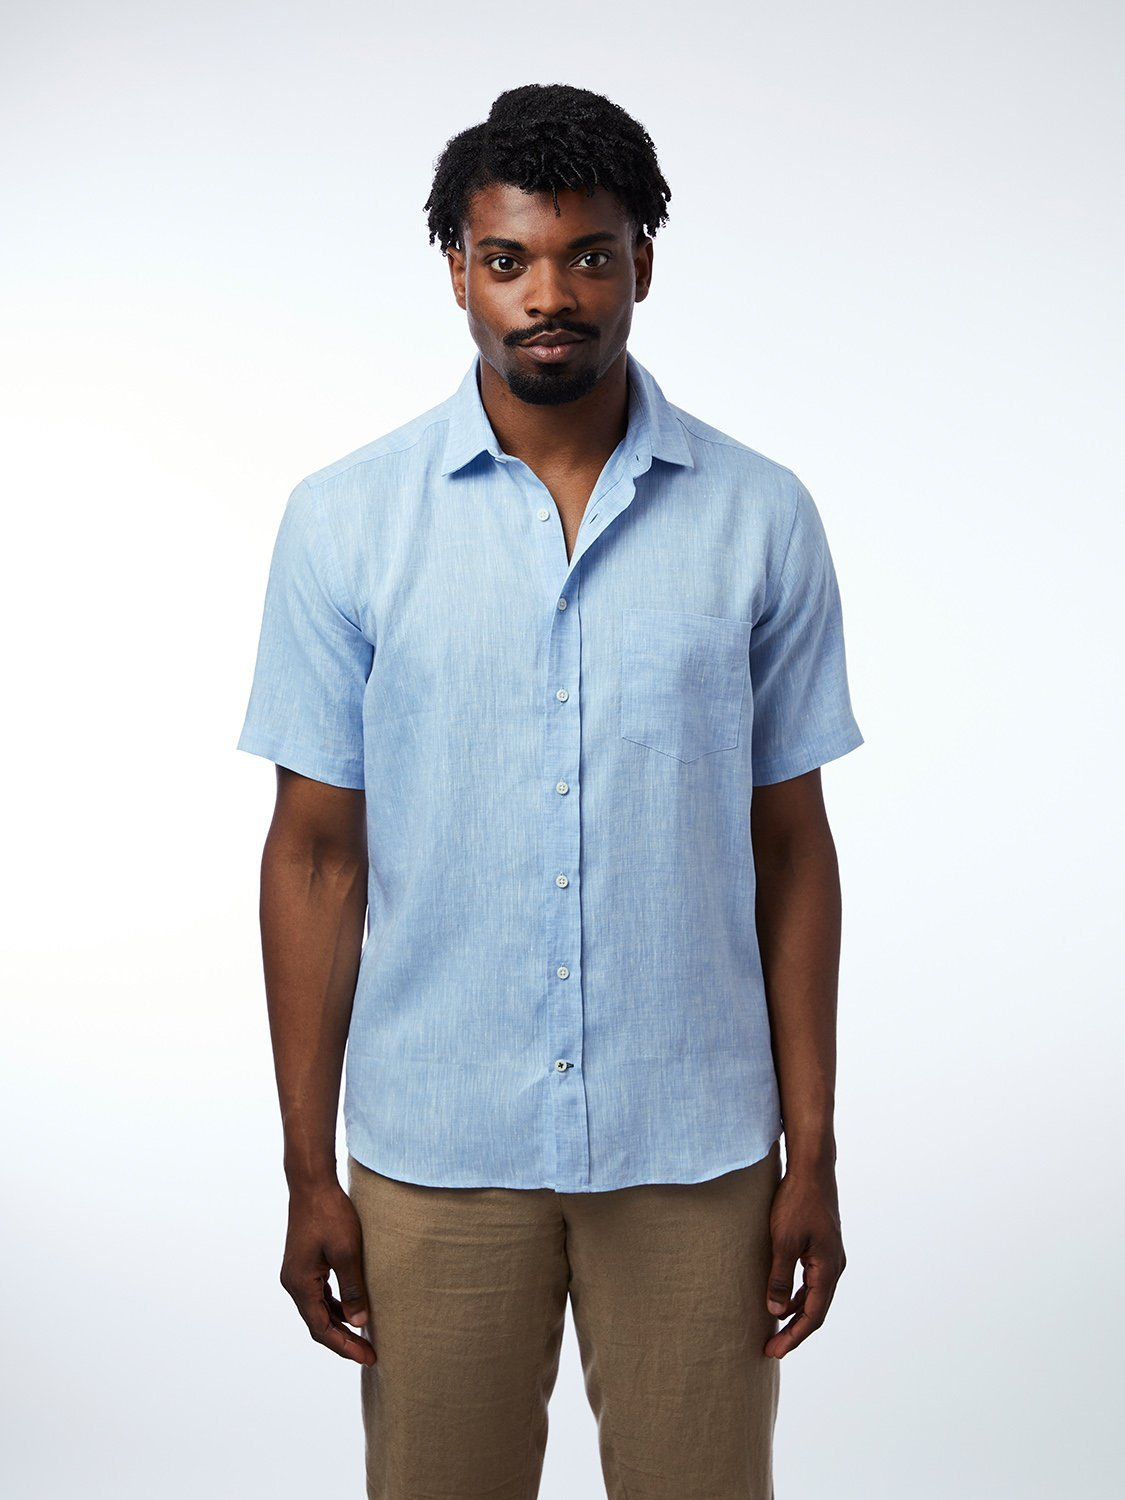 carpasus sustainable organic linen short sleeve shirt lightblue. Nachhaltiges Carpasus Hemd Kurzarm aus Bio Leinen in Hellblau